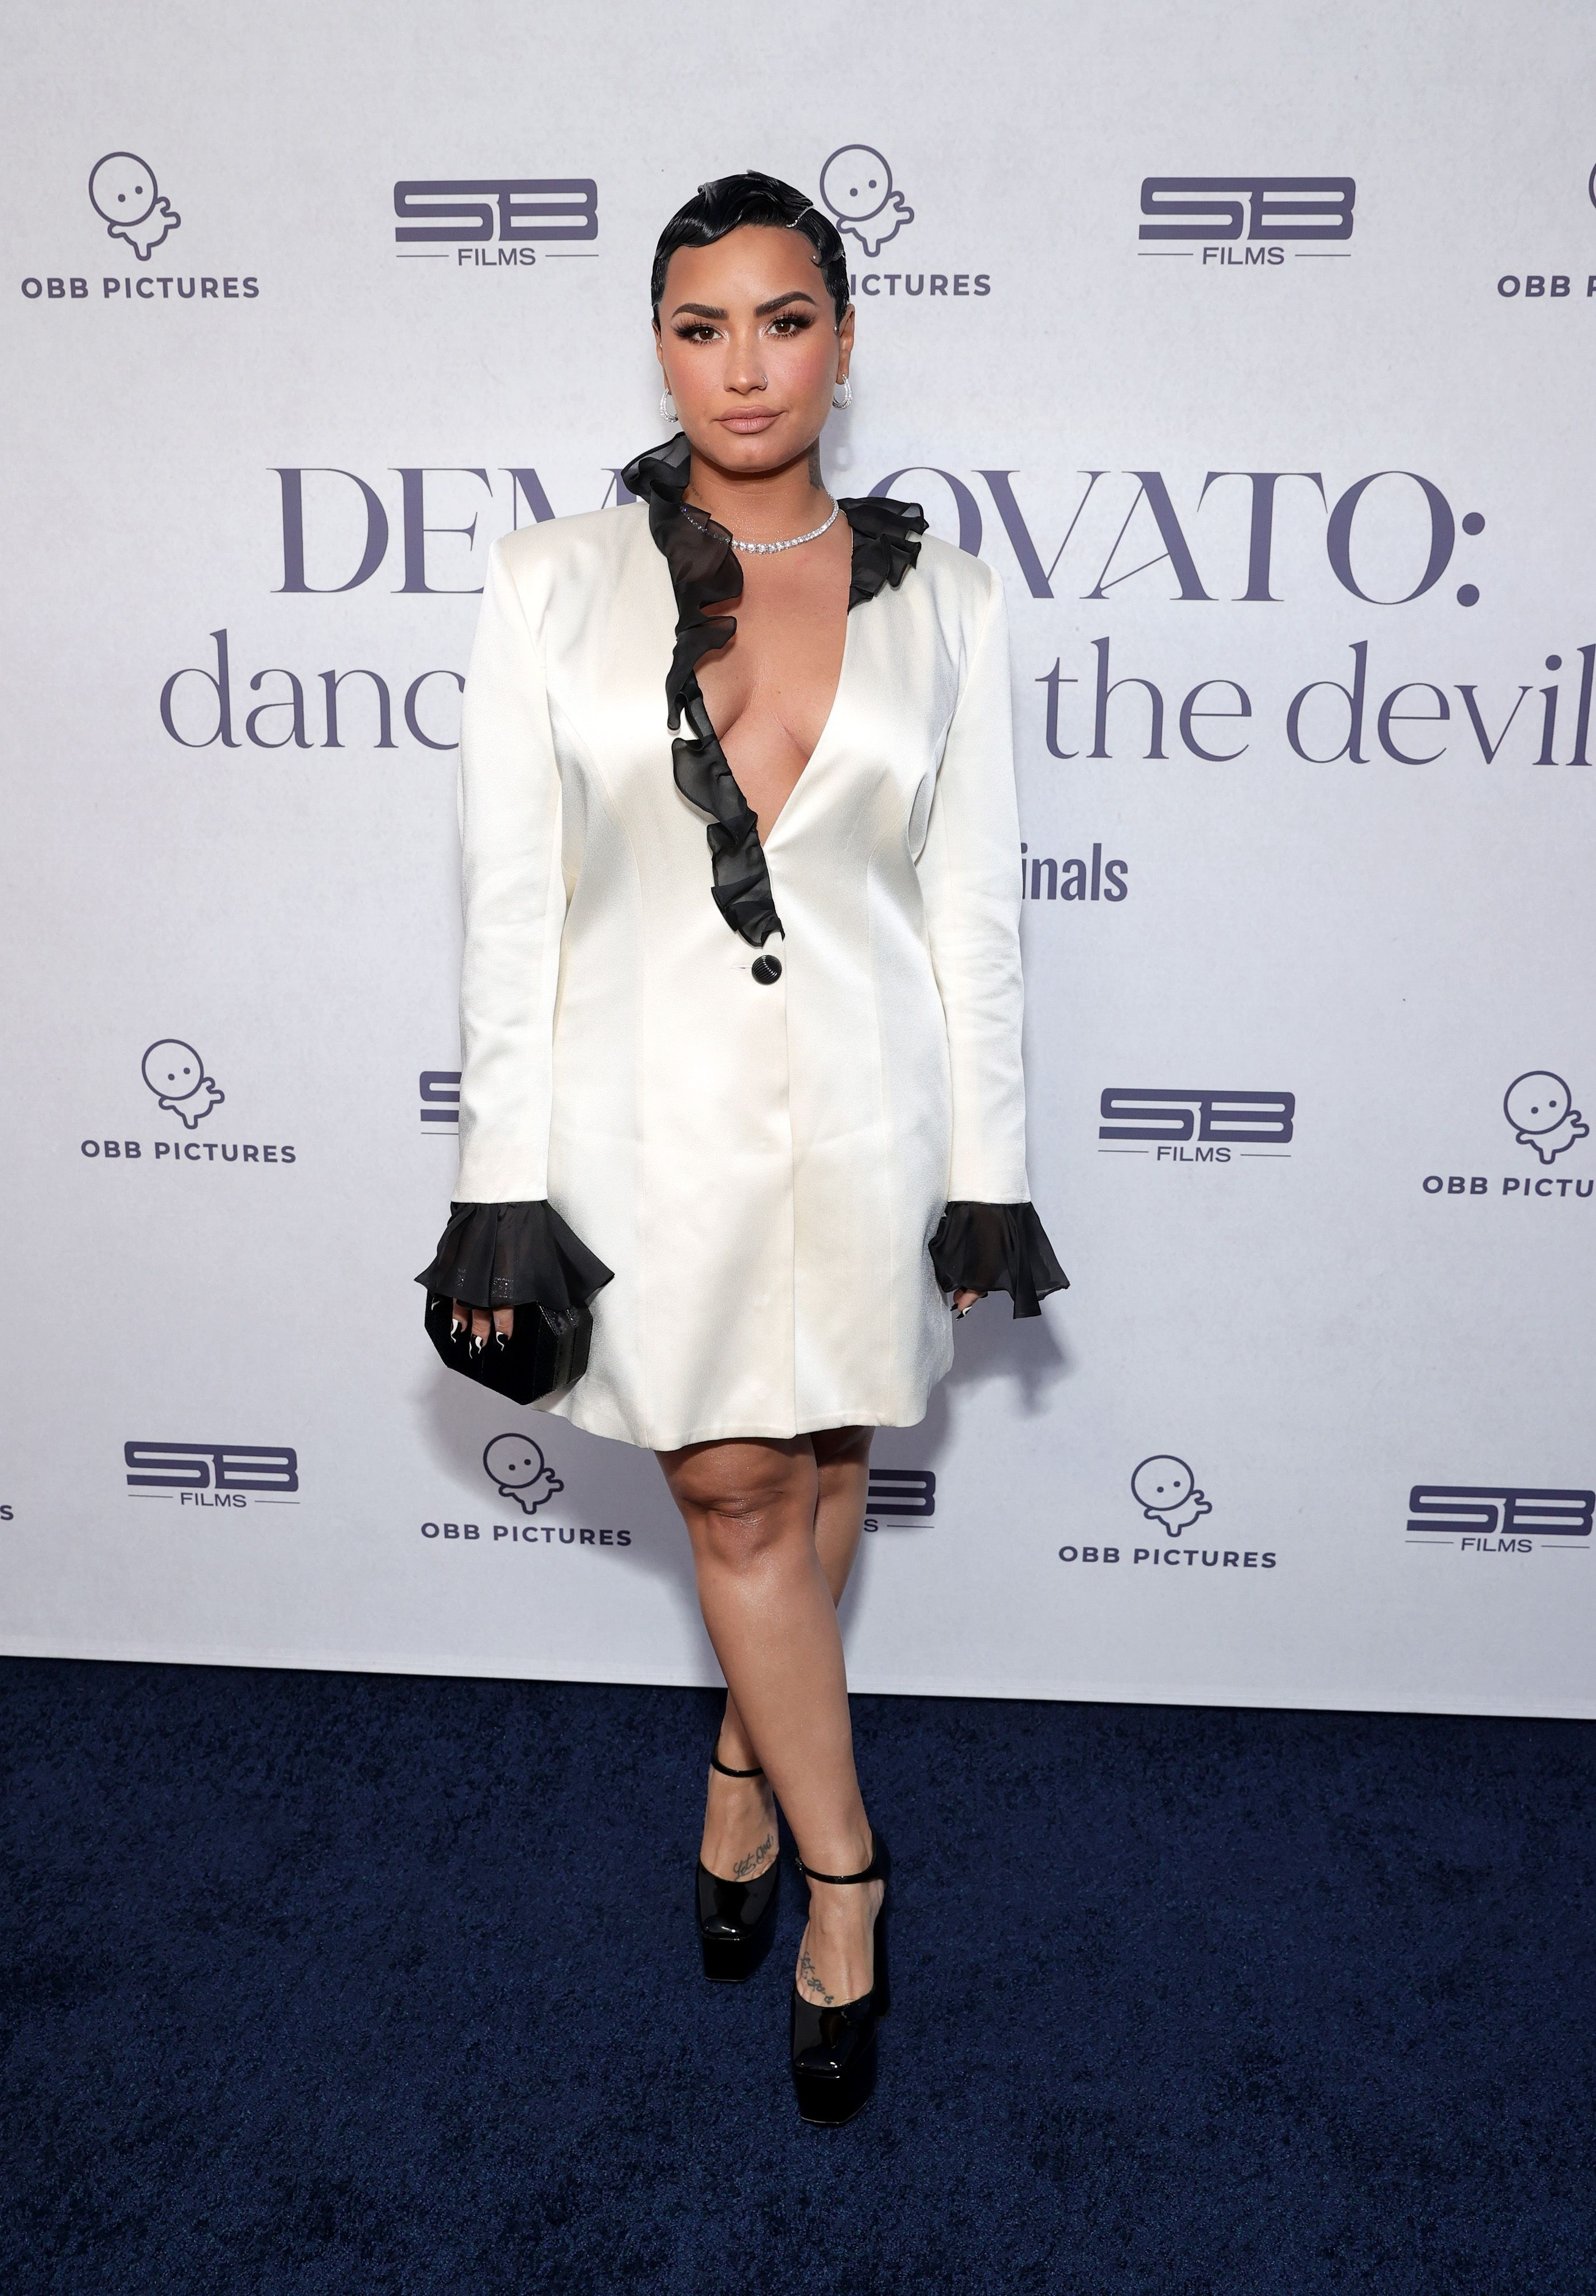 """Demi Lovato attends the OBB Premiere Event for YouTube Originals Docuseries """"Demi Lovato: Dancing With The Devil"""" at The Beverly Hilton on March 22, 2021 in Beverly Hills, California"""